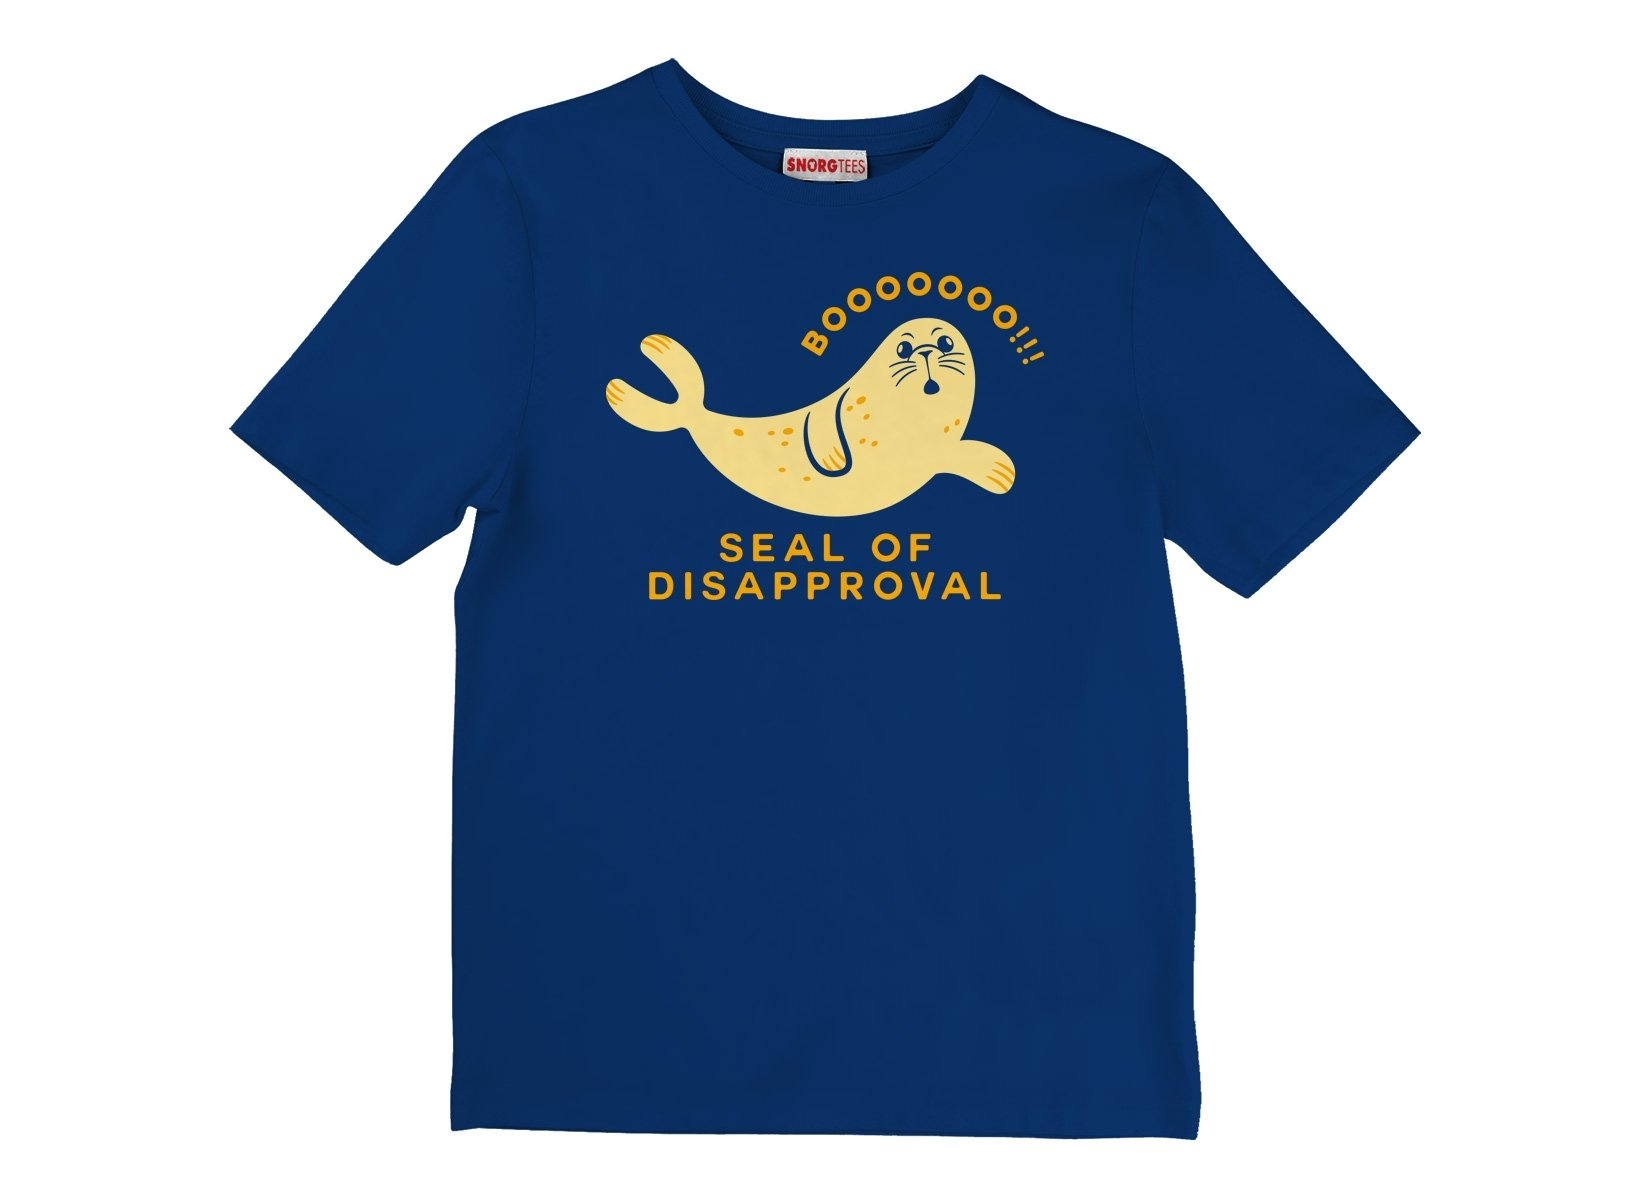 Seal Of Disapproval on Kids T-Shirt